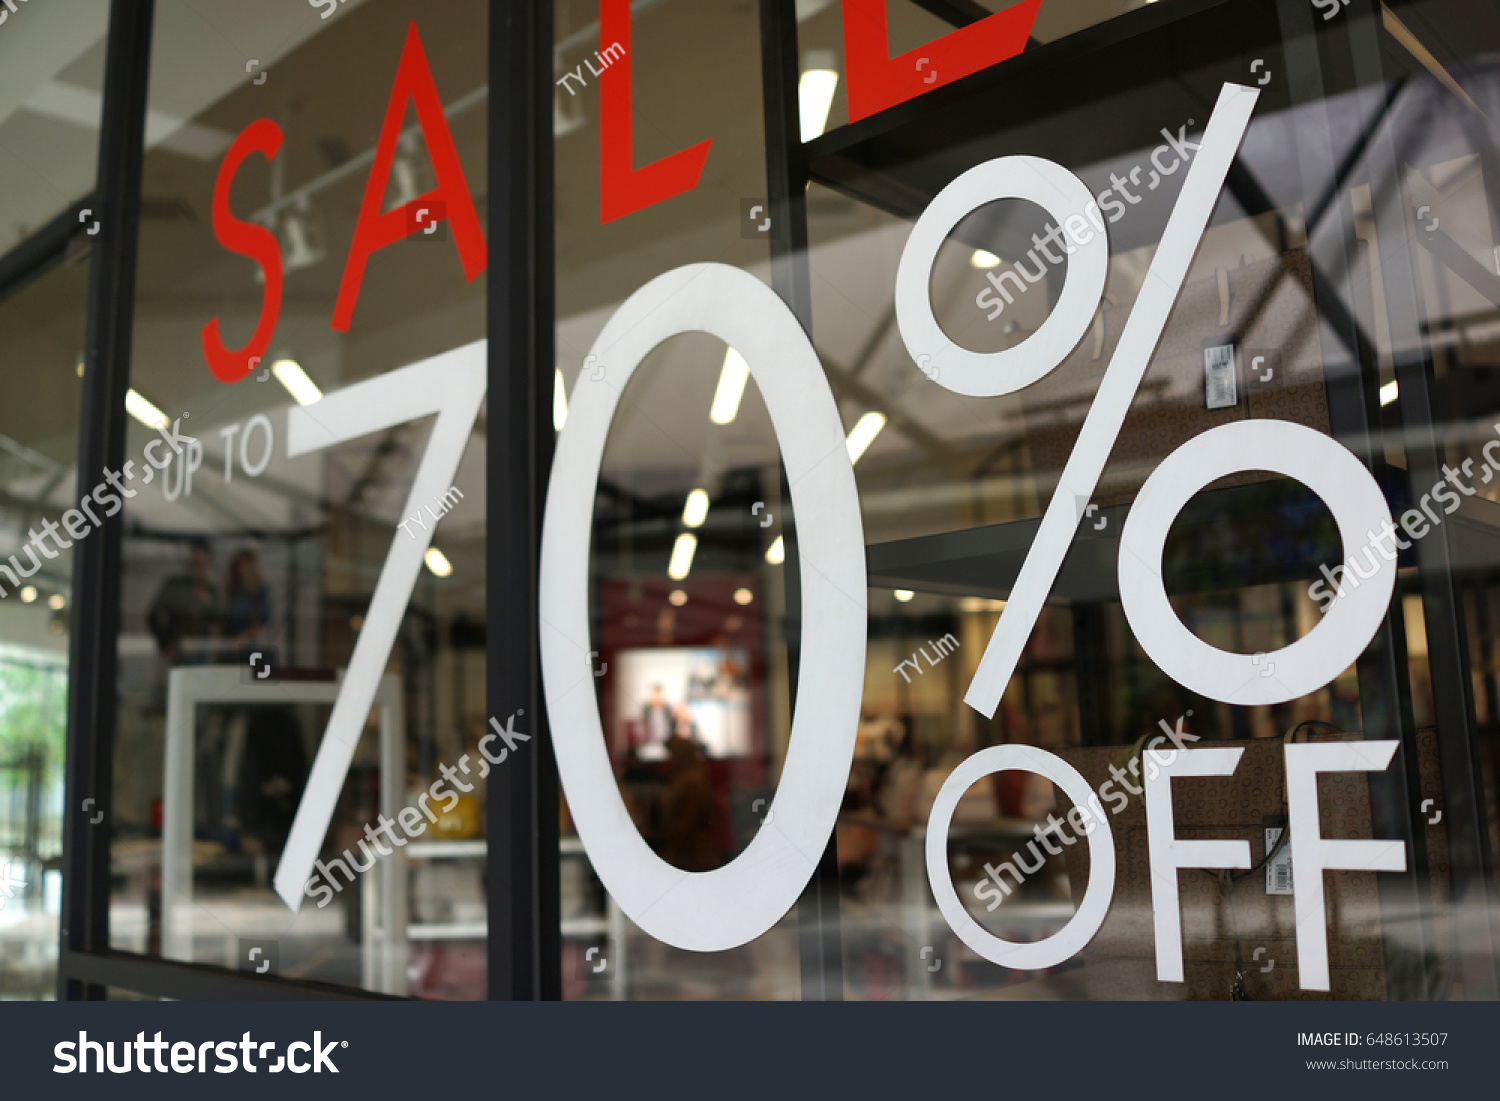 Large Letters For Sale Awesome Large Sale 70 Off Letters On Stock Photo 648613507  Shutterstock Decorating Inspiration